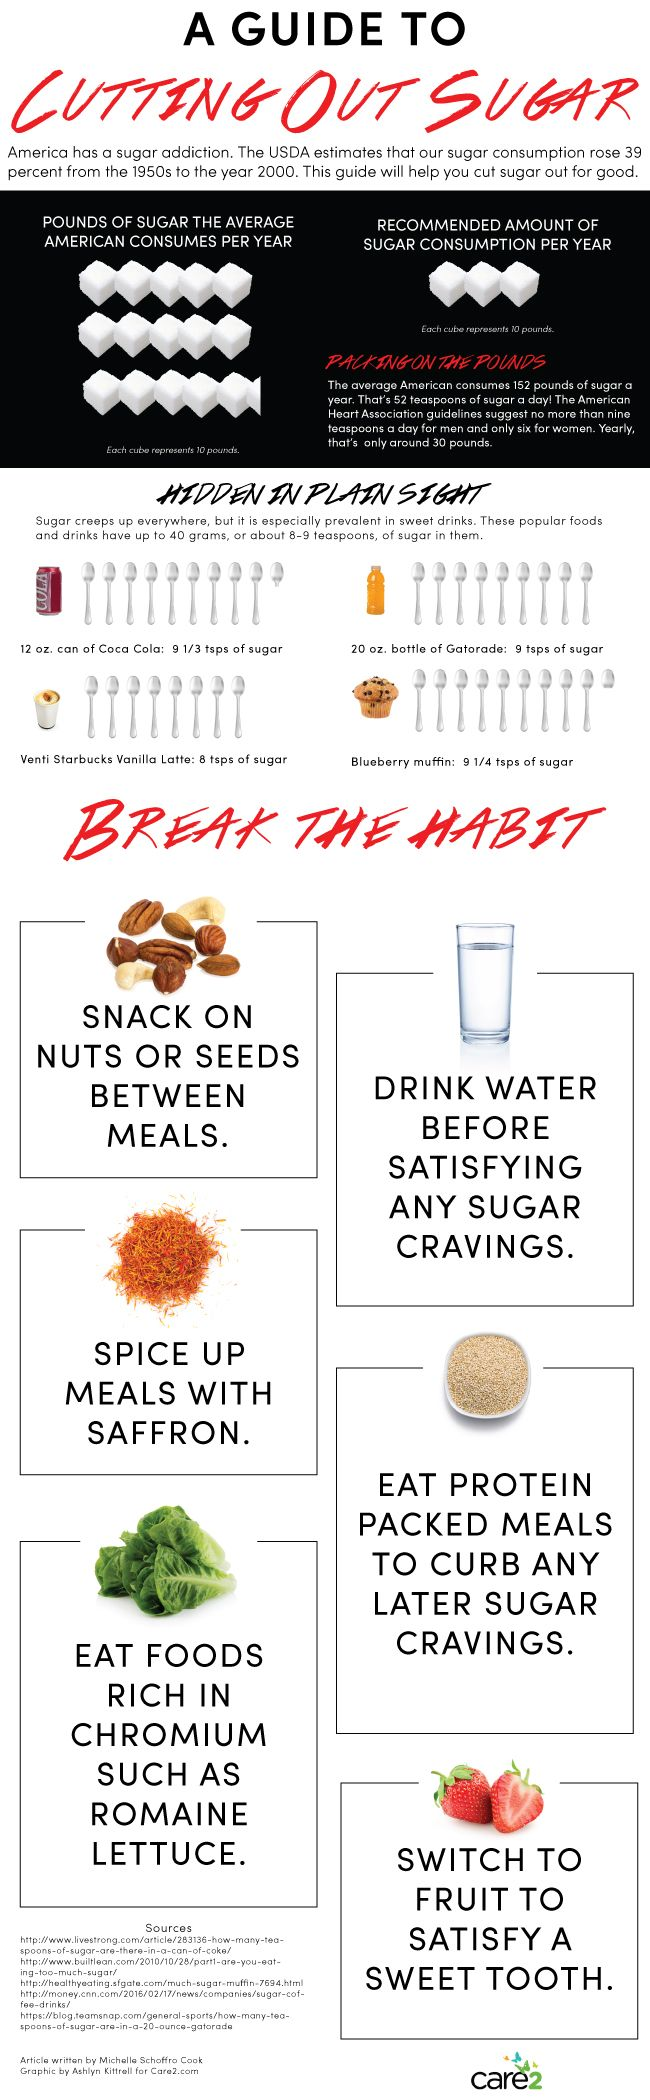 A Guide To Cutting Sugar Out Of Your Diet | Care2 Healthy Living